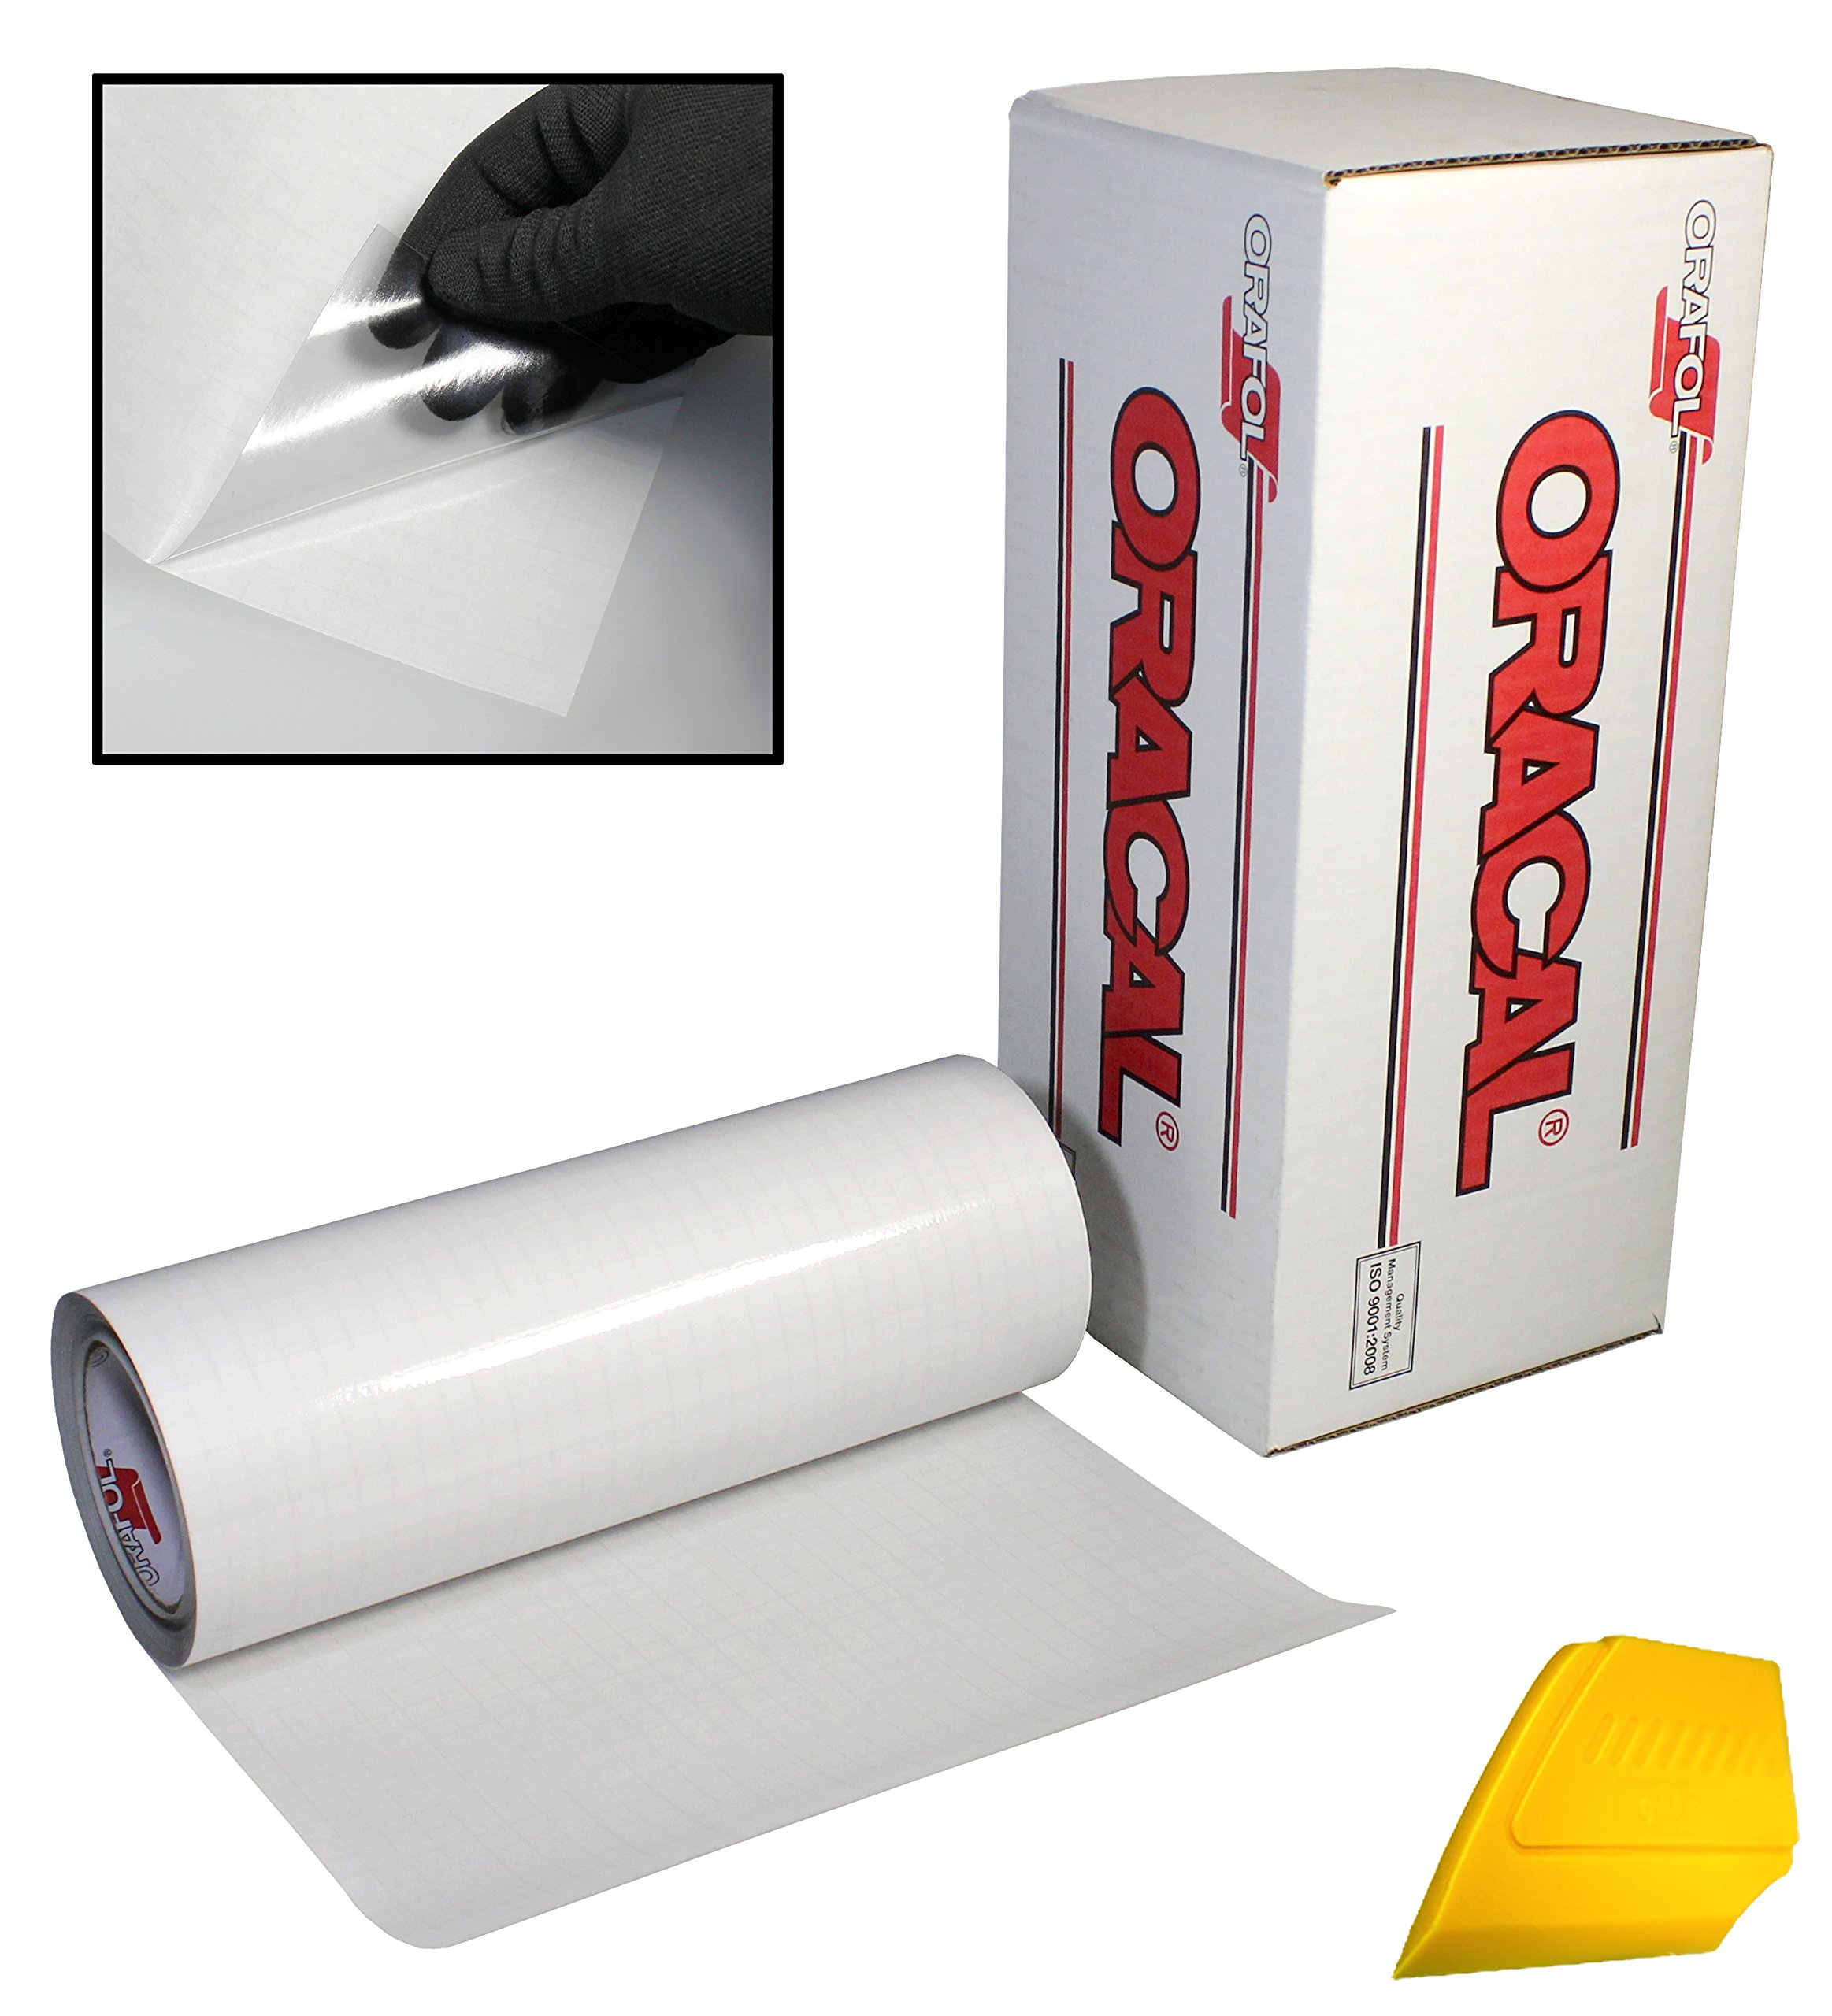 ORACAL Transparent Transfer Paper Tape Roll w/ Hard Yellow Detailer Squeegee (50ft x 12'') by ORACAL